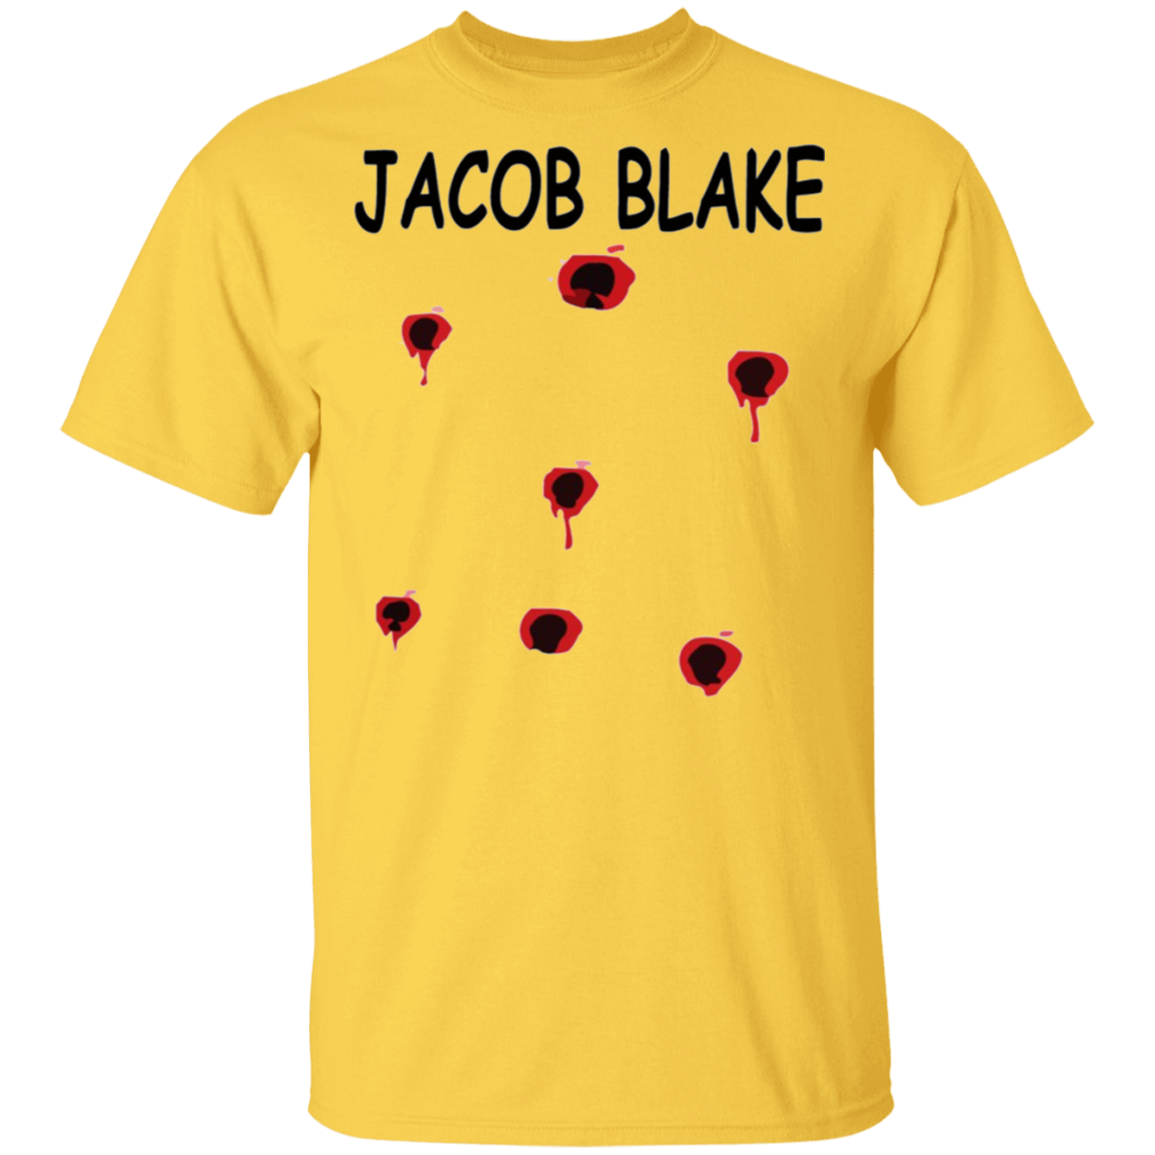 Jacob Blake 7 Bullet Holes In The Back T-Shirt Wnba Protest Shirts Blm